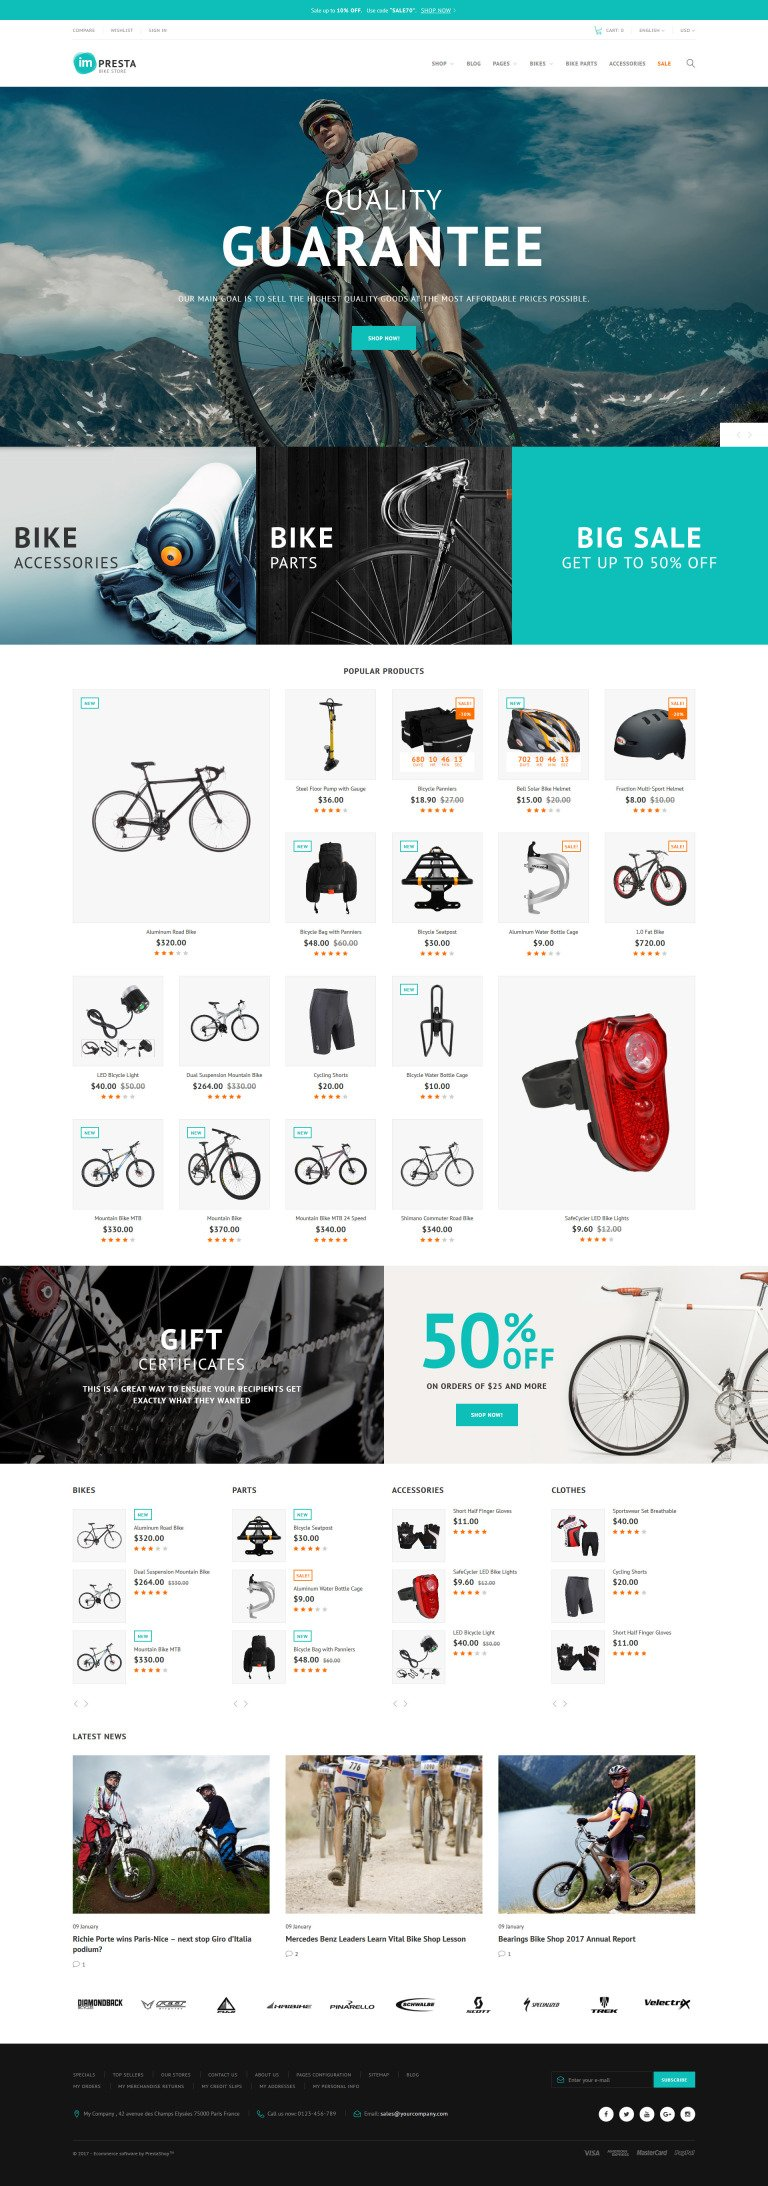 Impresta - Bike Store PrestaShop Theme New Screenshots BIG